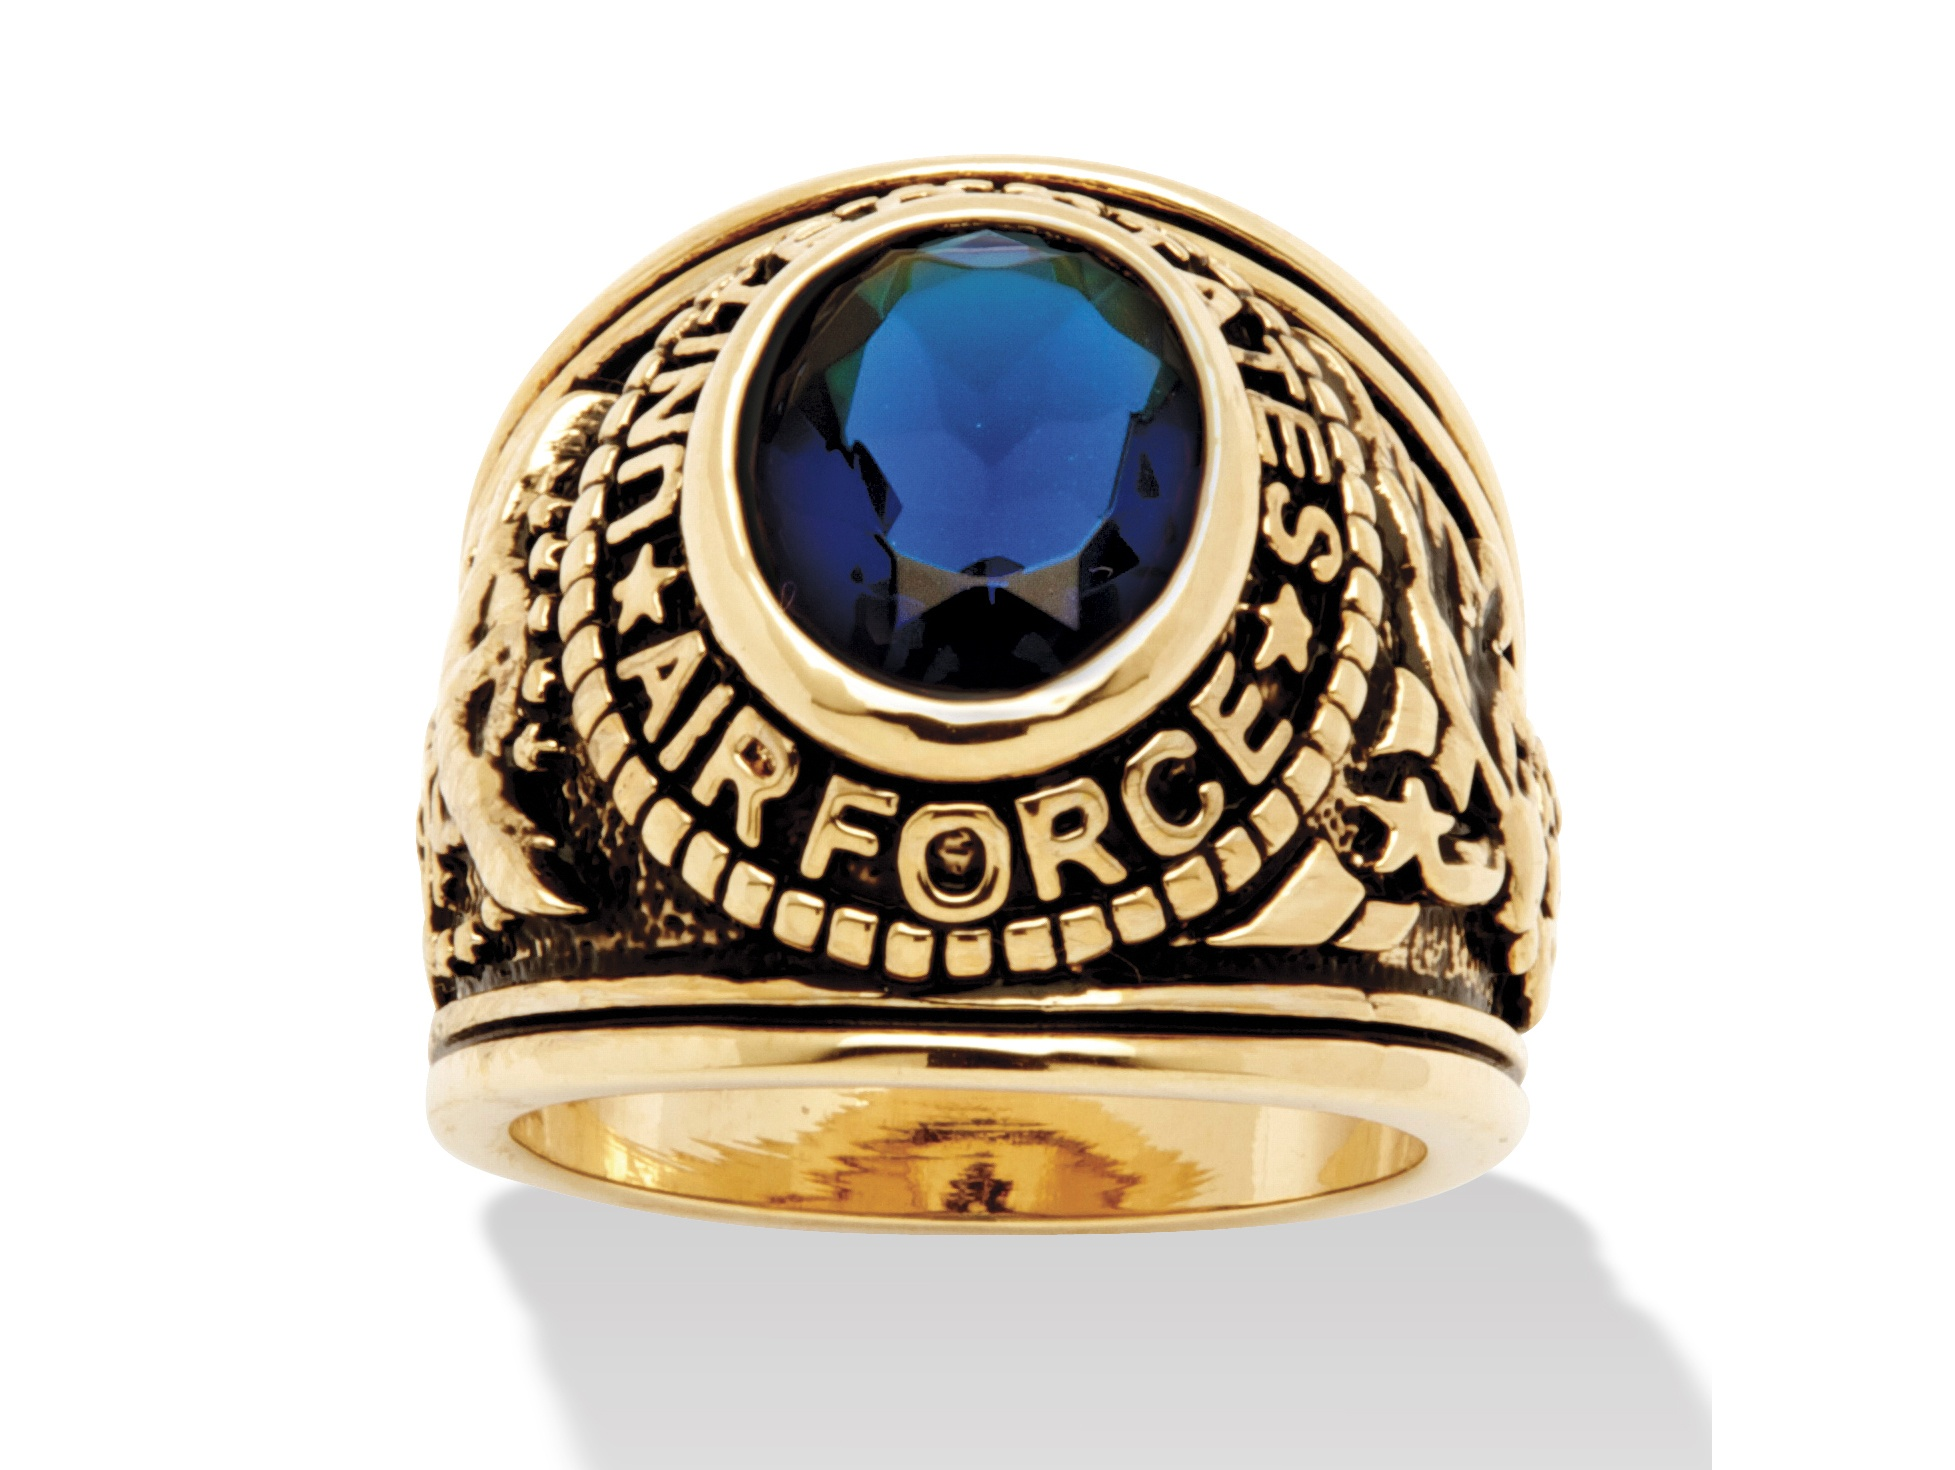 US Army ring with insignia,gold plated sapphire stone,size 13,USA made